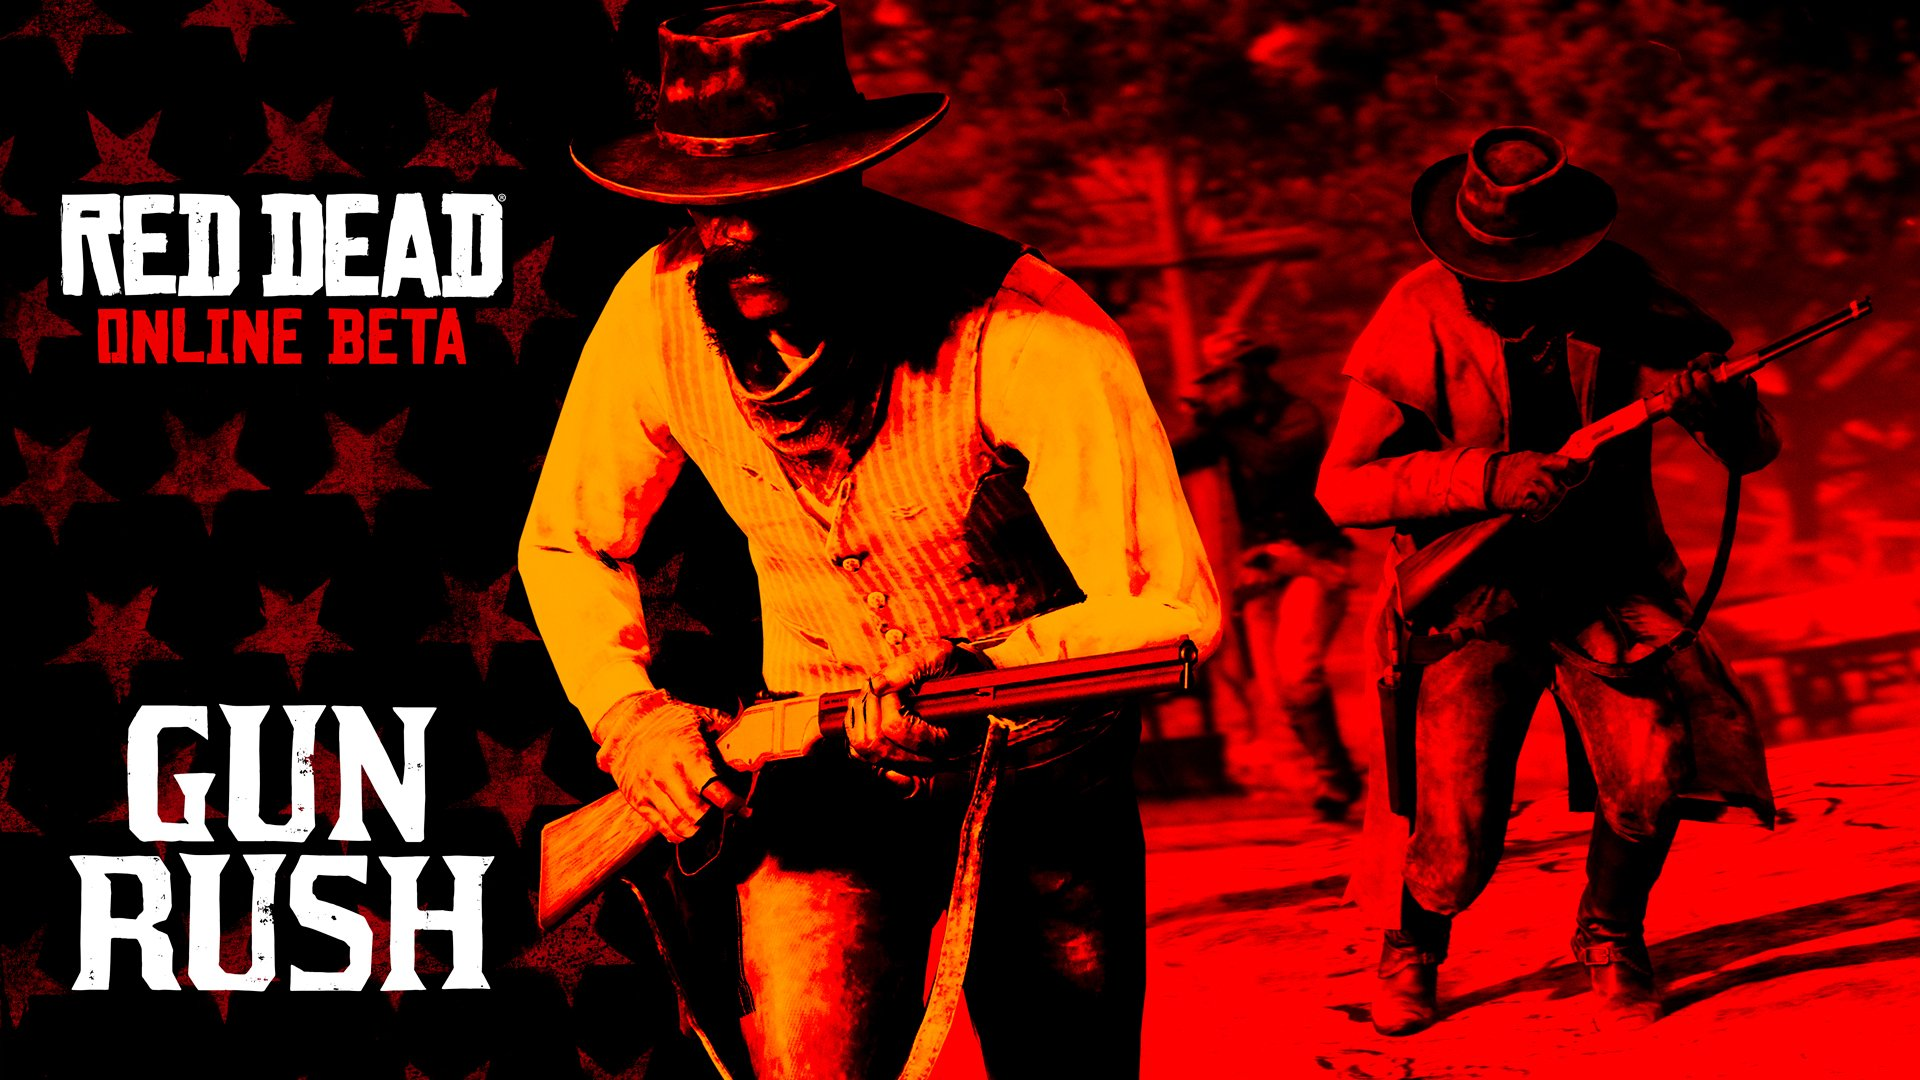 Red Dead Online Beta Update Play New Gun Rush Mode Now, Plus More to Come           Details: https://t.co/S4uXEkCp6b https://t.co/RxkvjgxhPk